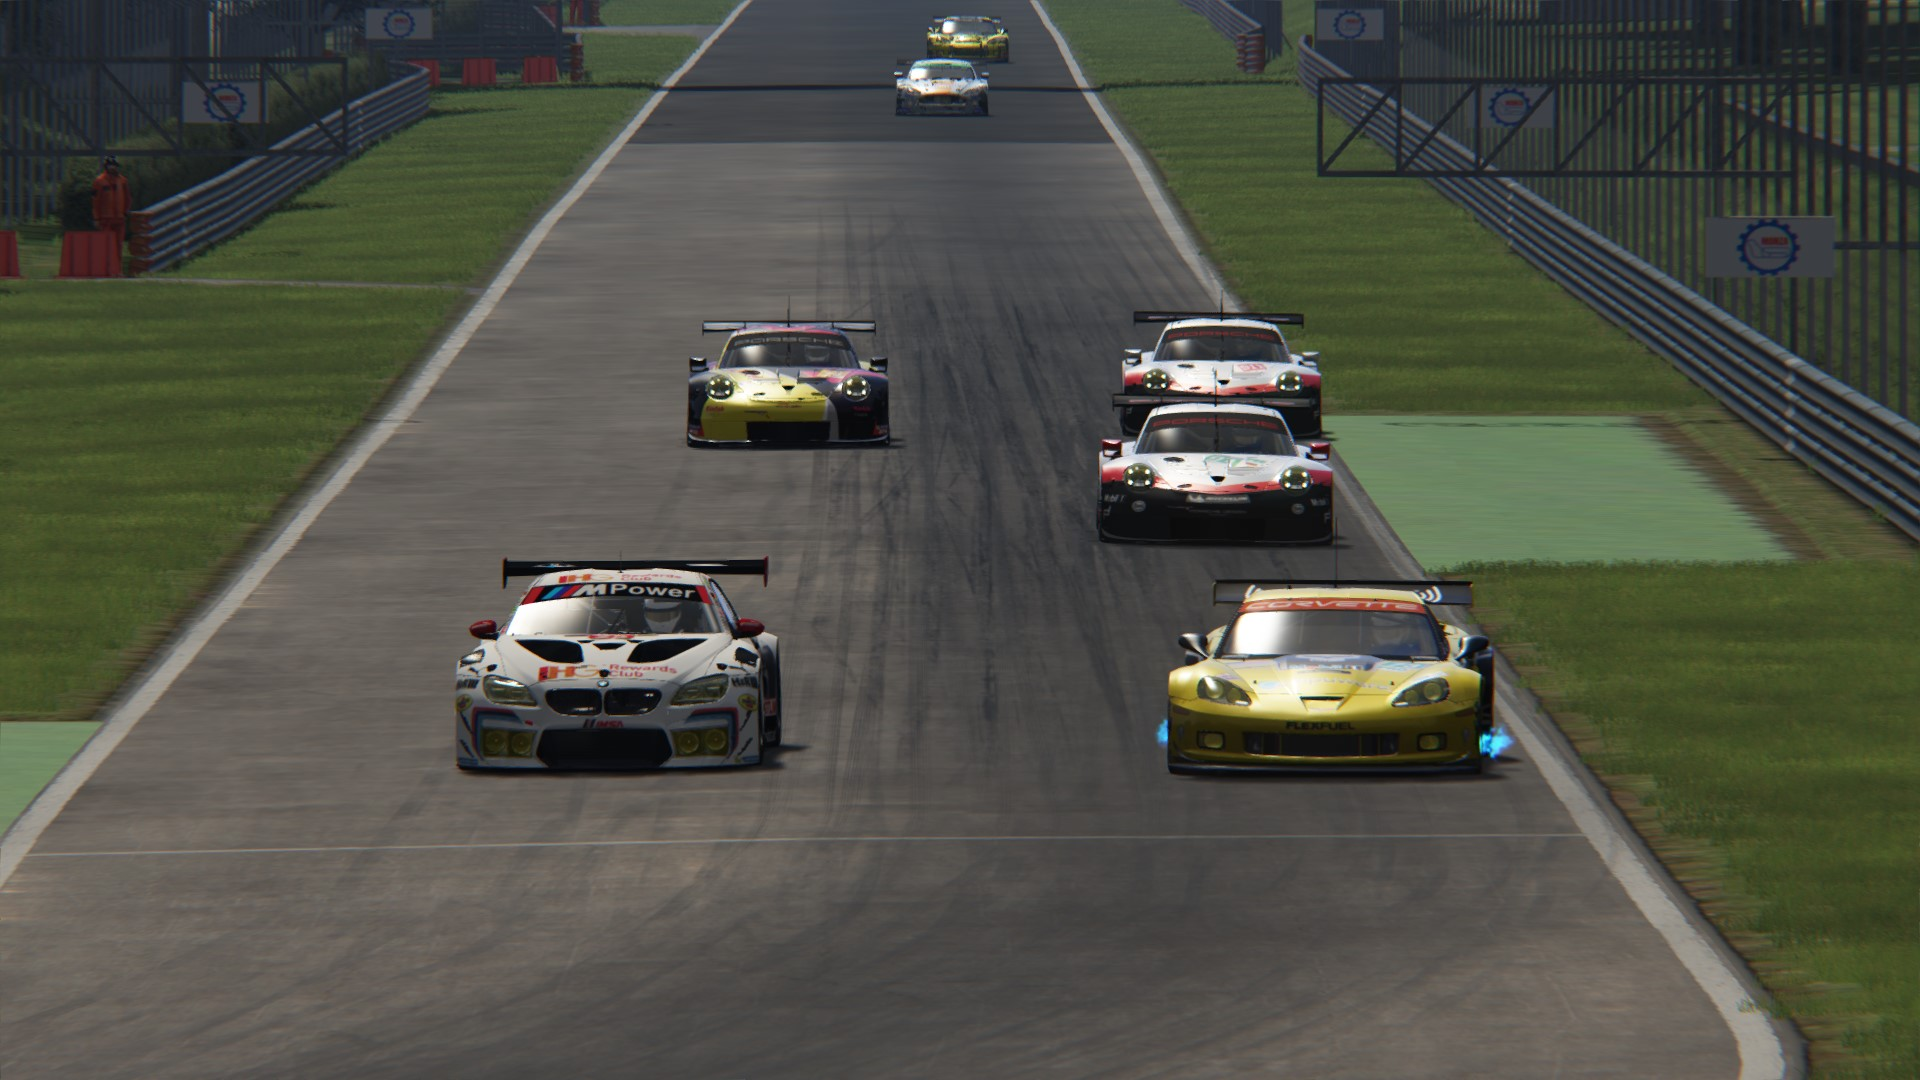 Screenshot_ks_porsche_911_rsr_2017_monza_6-9-117-19-3-53.jpg